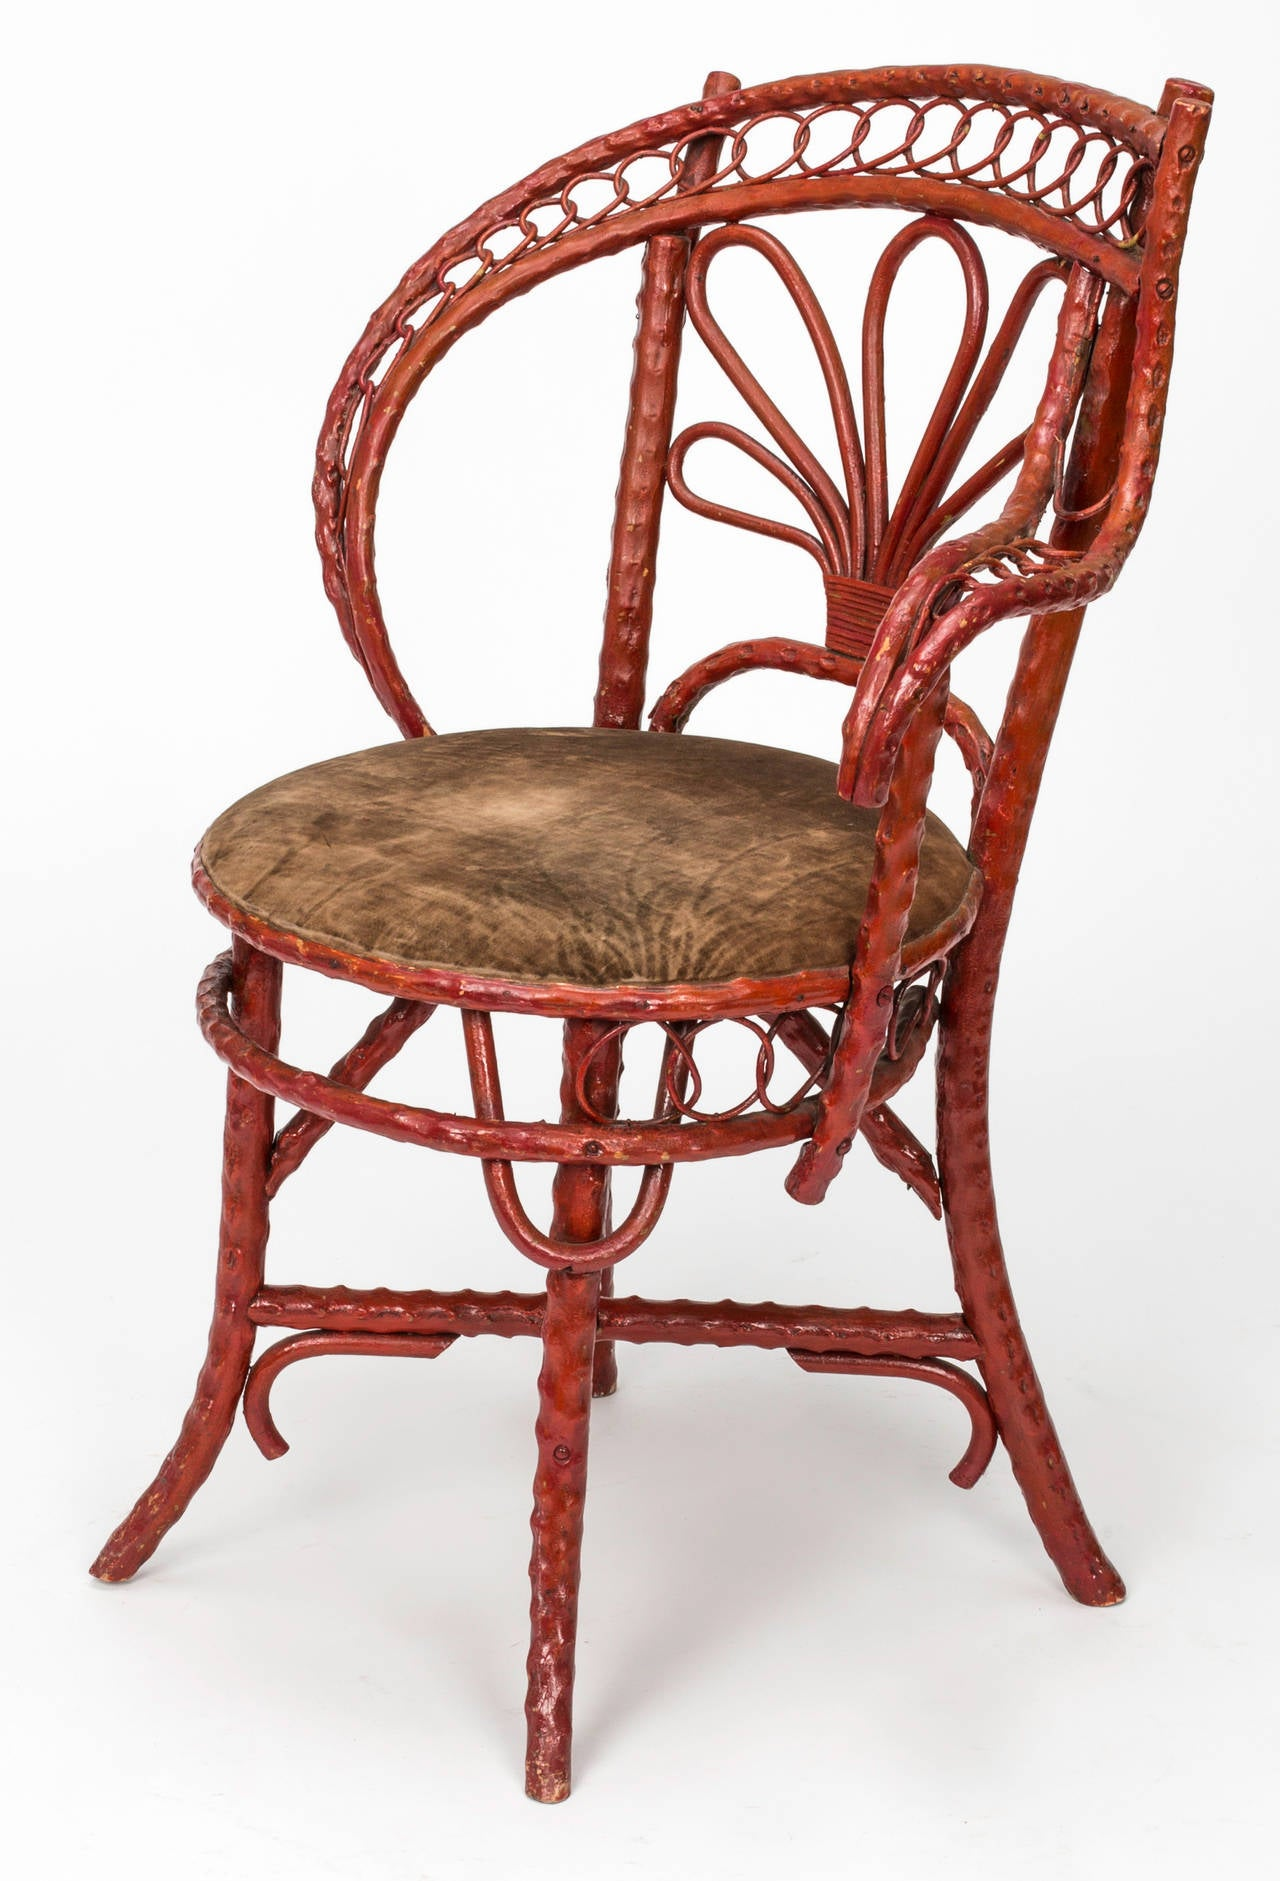 English bent bamboo armchair circa 1850s for sale at 1stdibs for Bent bamboo furniture